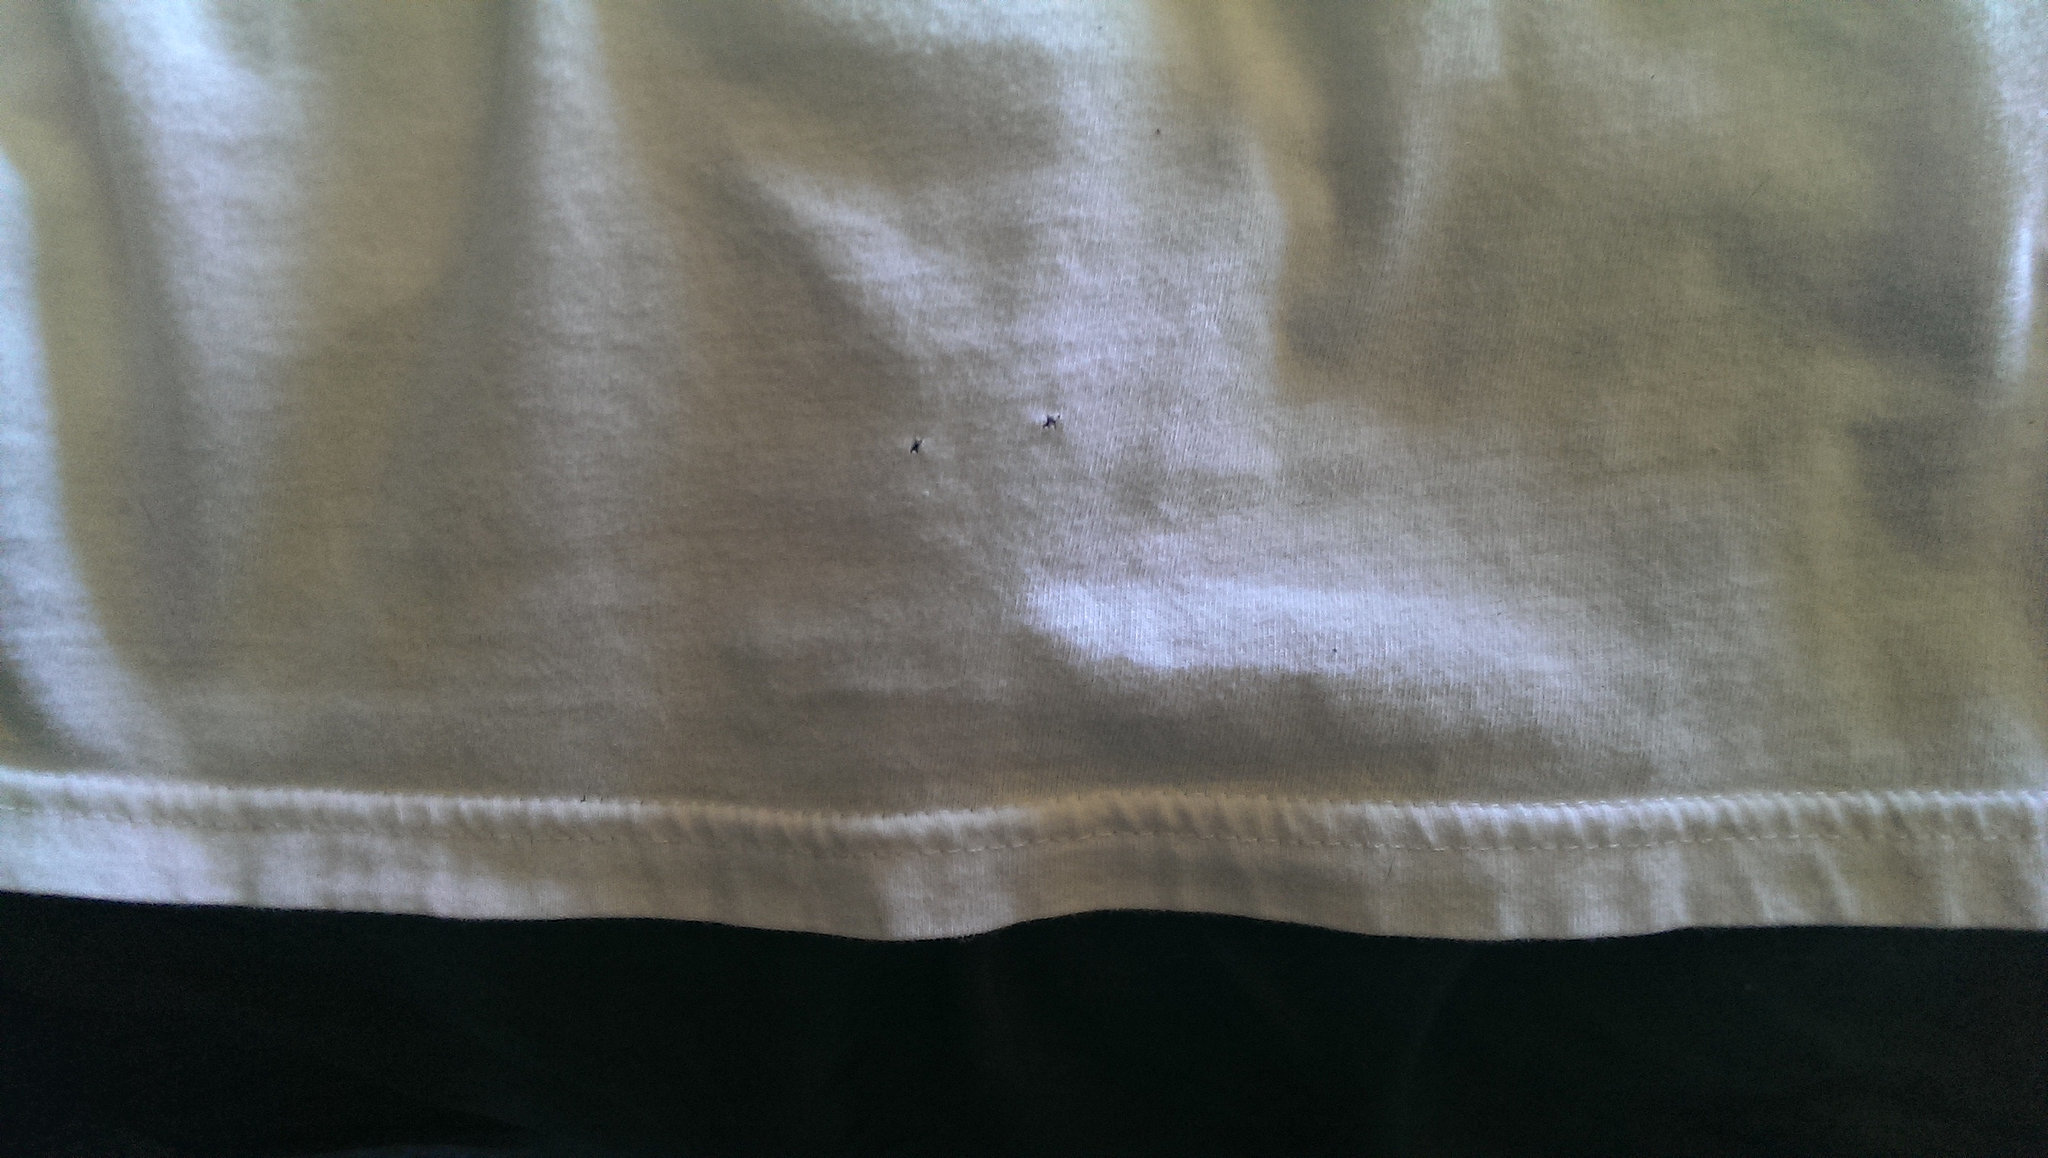 Tiny Holes in a Perfectly Good Shirt